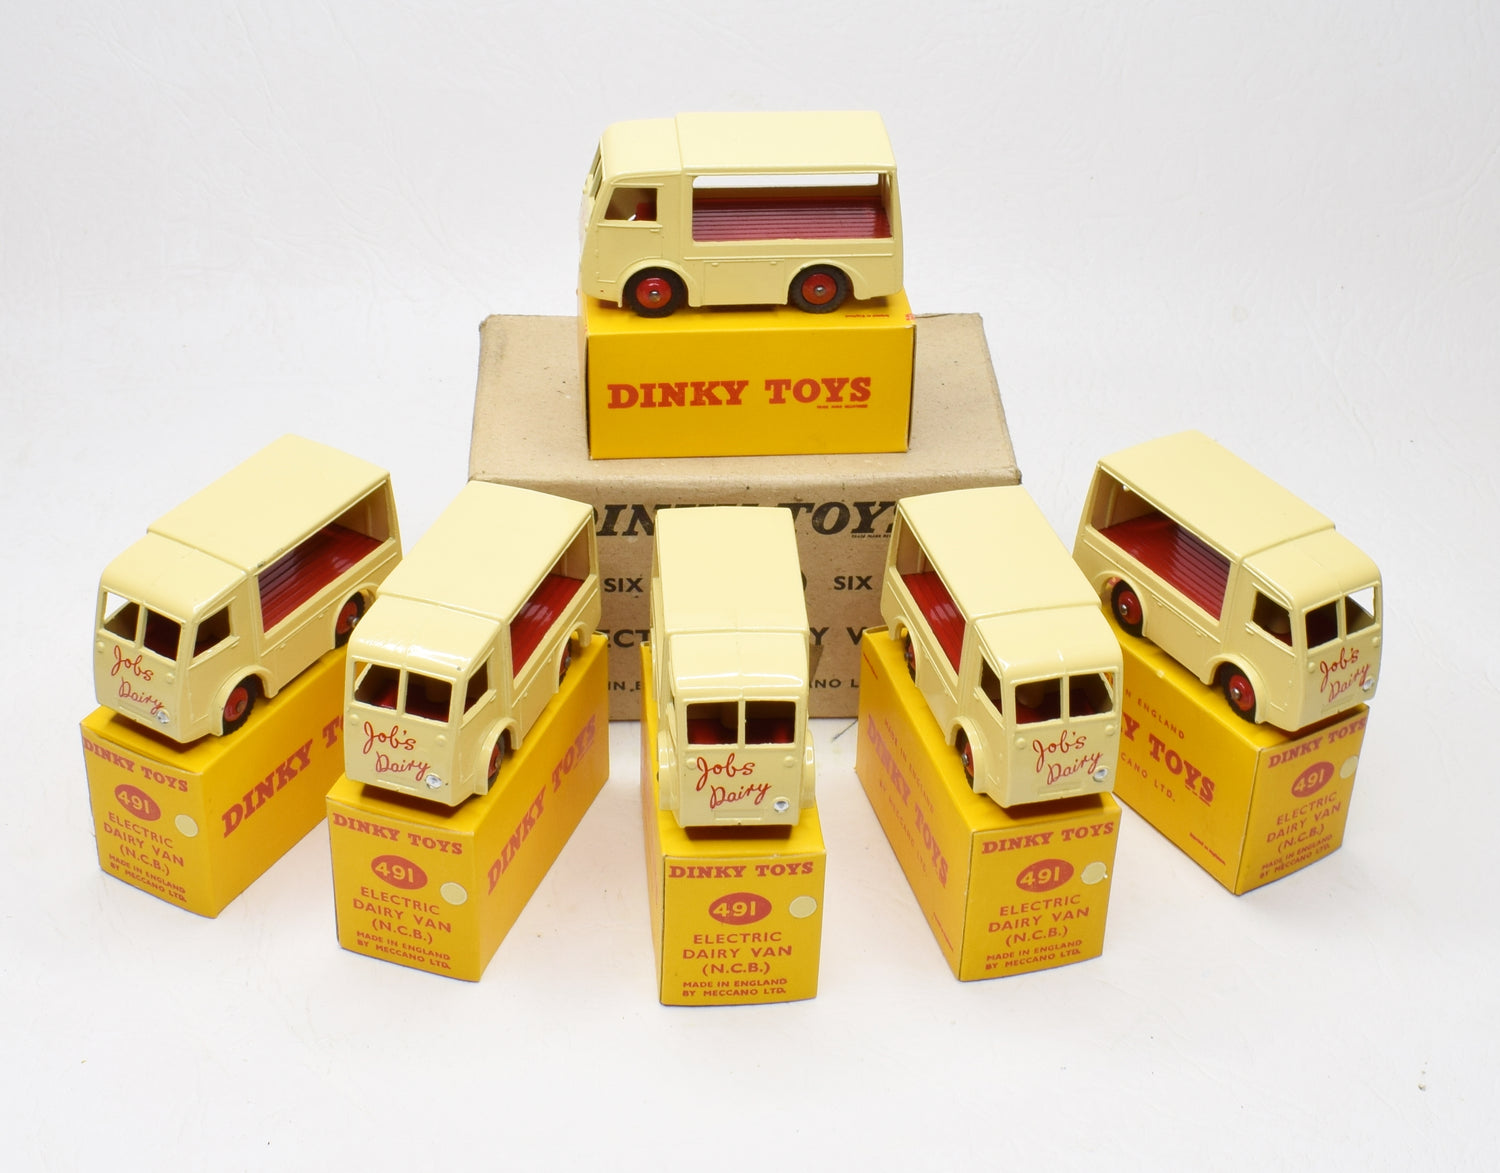 Trade pack of 6 Dinky Toys 491 'Jobs Dairy' Virtually Mint/Boxed